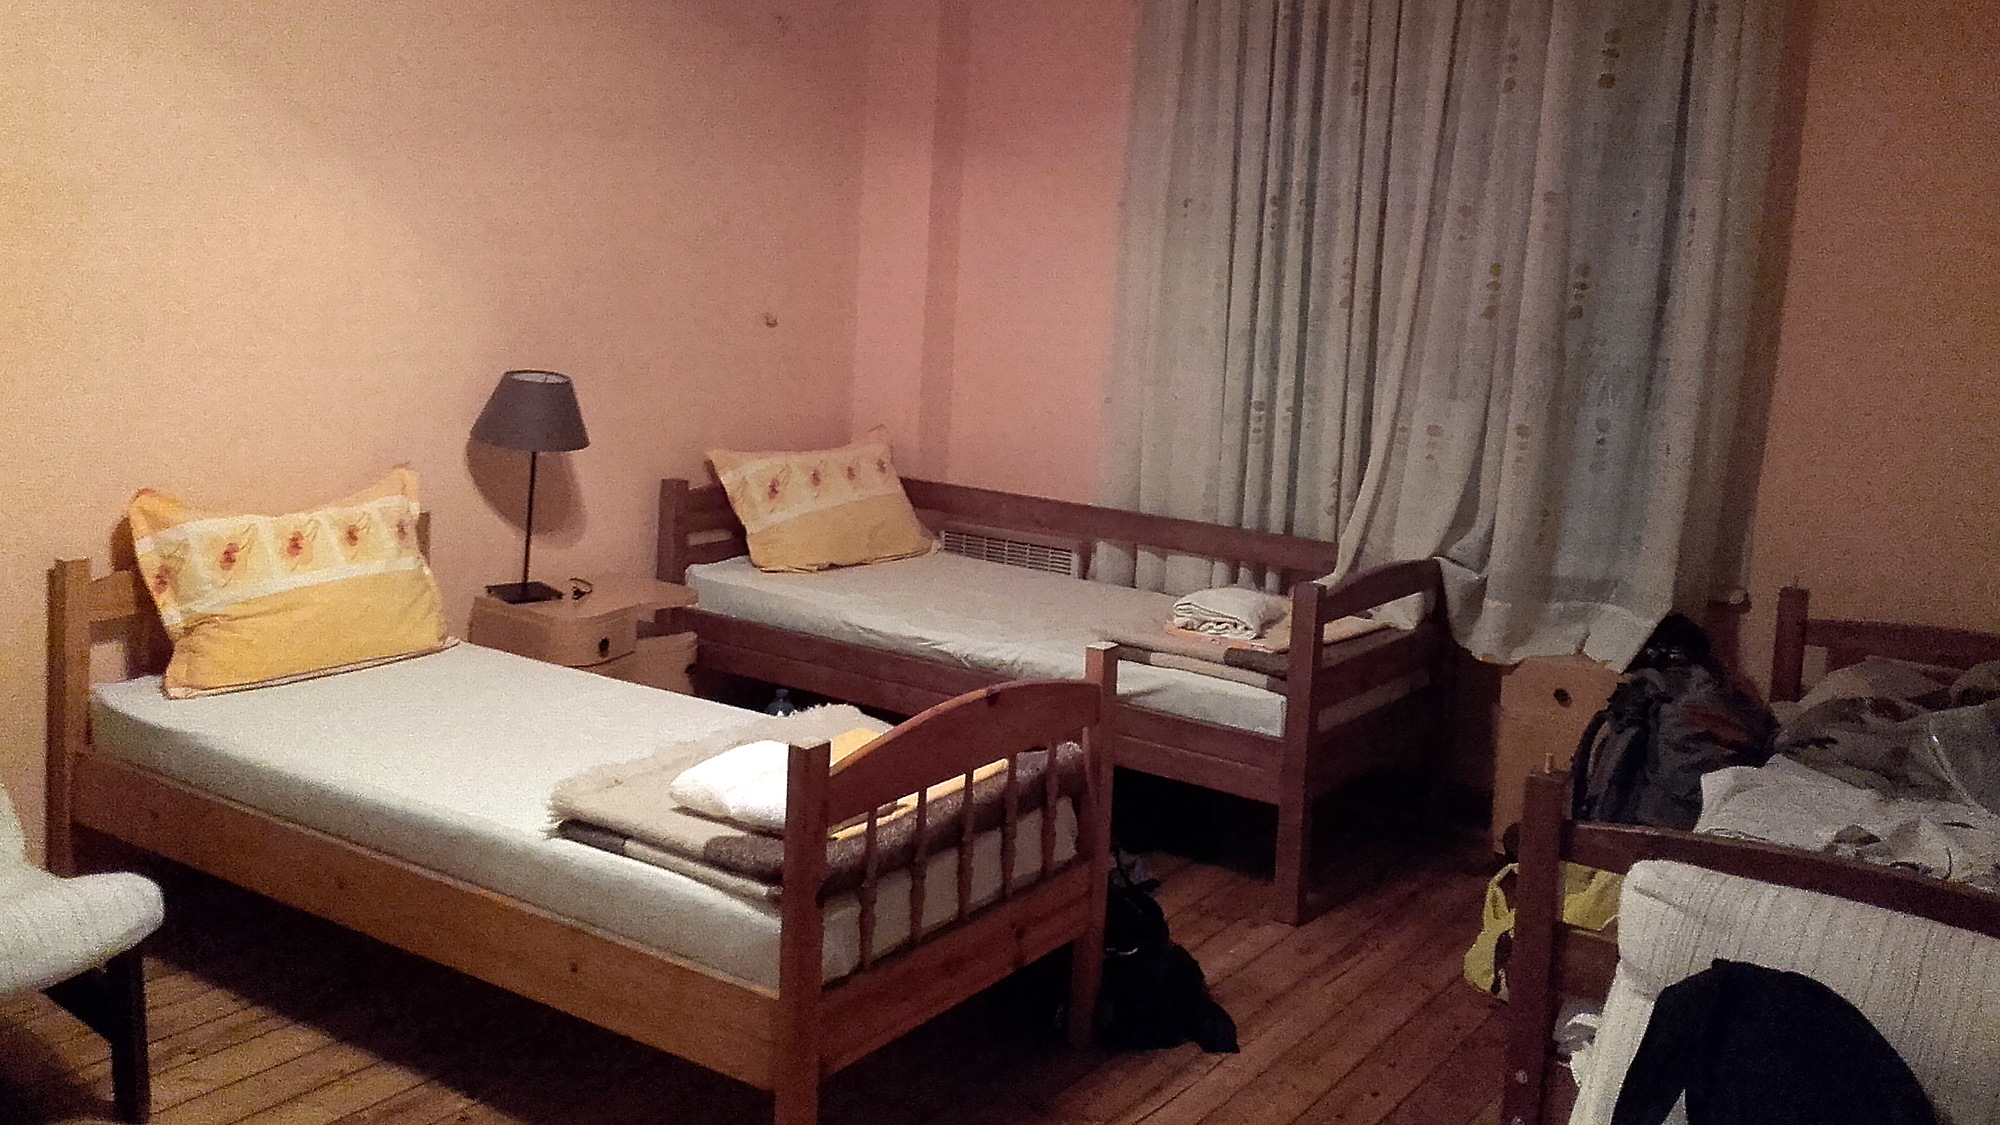 A dorm room in an old building with wooden beds in Sofia, Bulgaria.